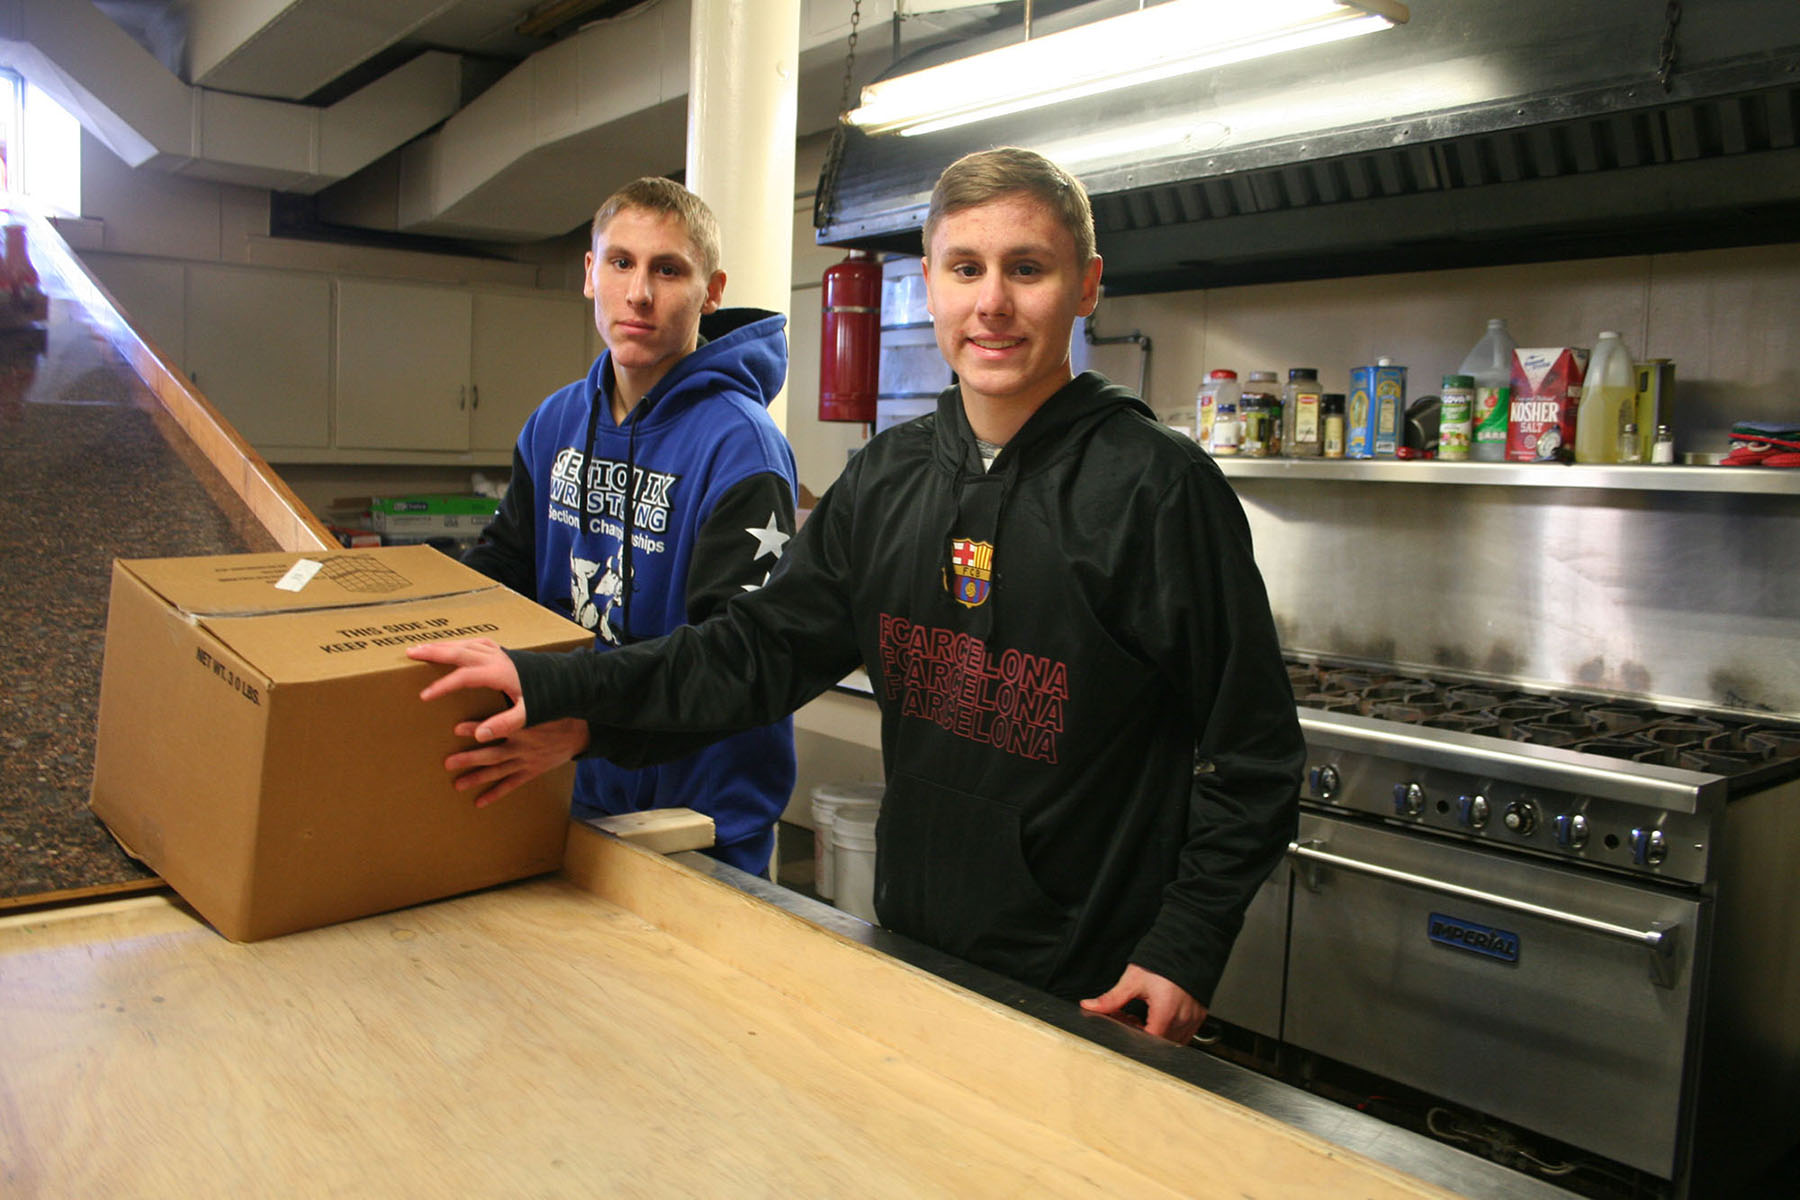 Ulster BOCES SkillsUSA Students Practice Community Service